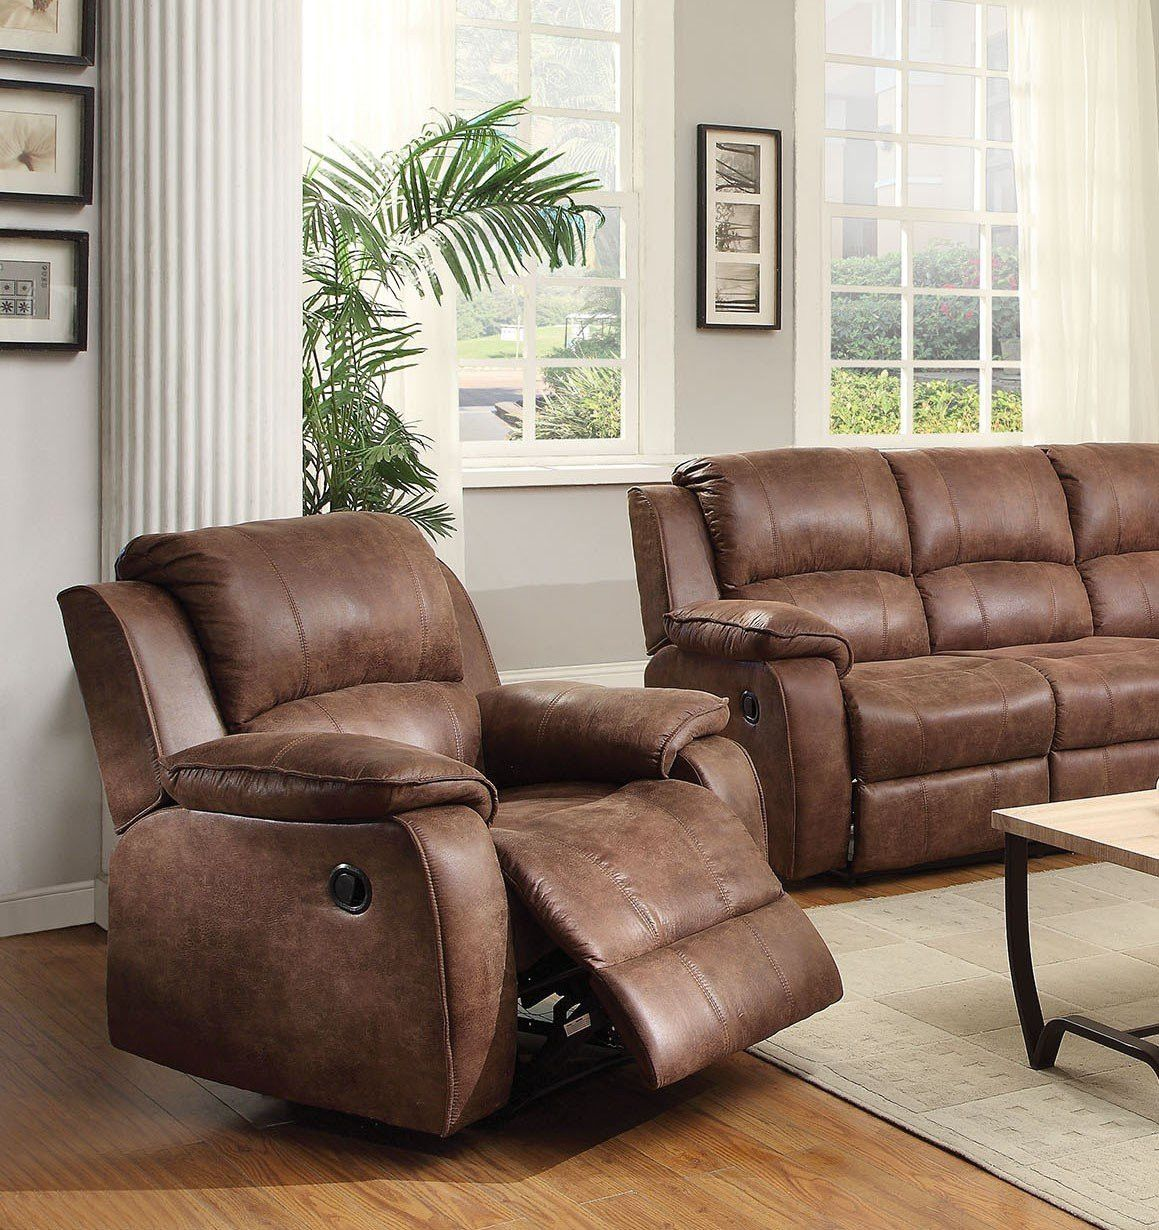 Acme Zanthe 2 Tone Brown Padded Suede Recliner Chair 51442